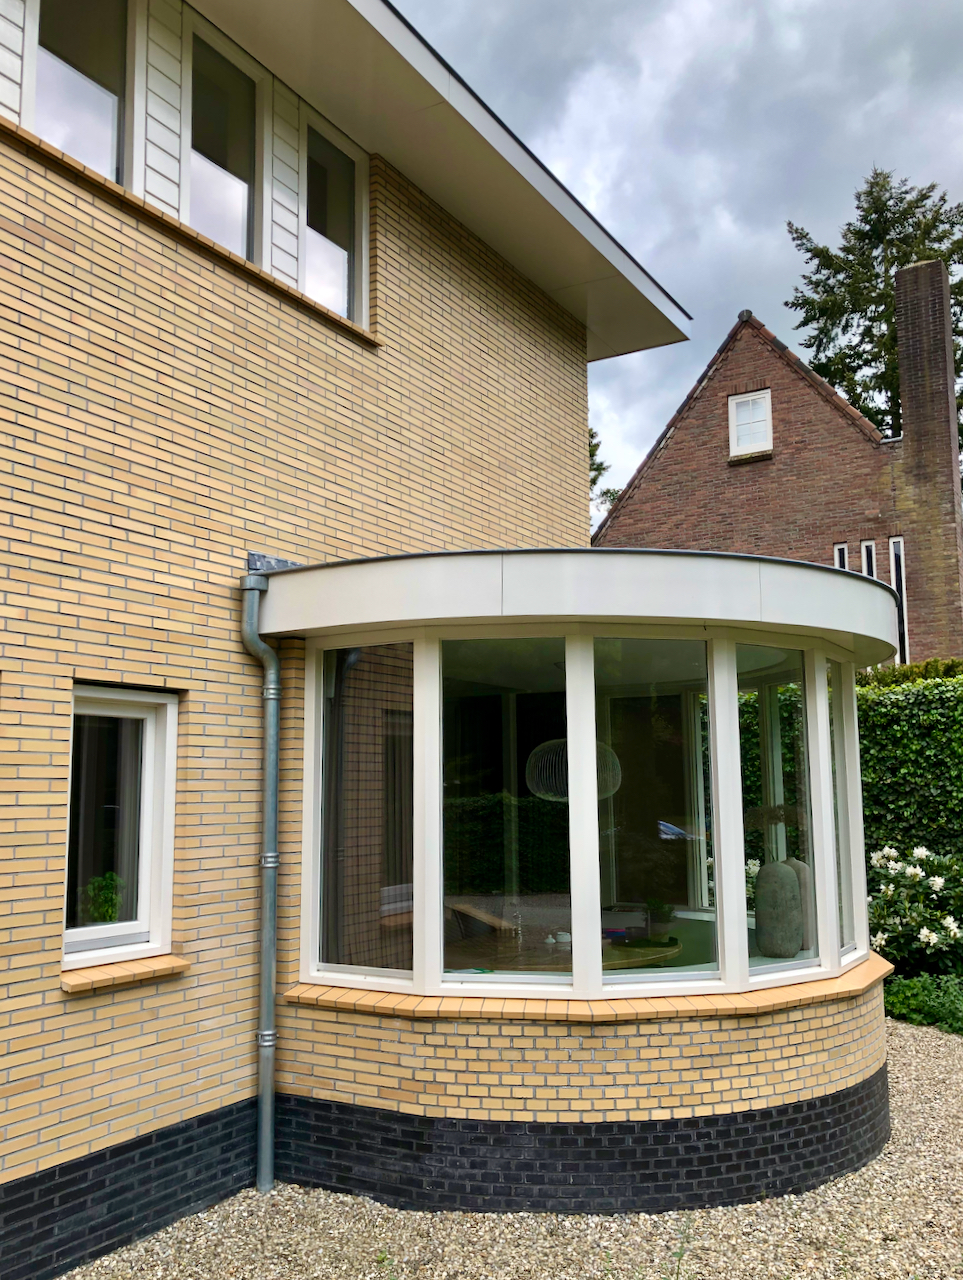 modern villa next to house of architect Willem Dudok, Utrecht, Netherlands.